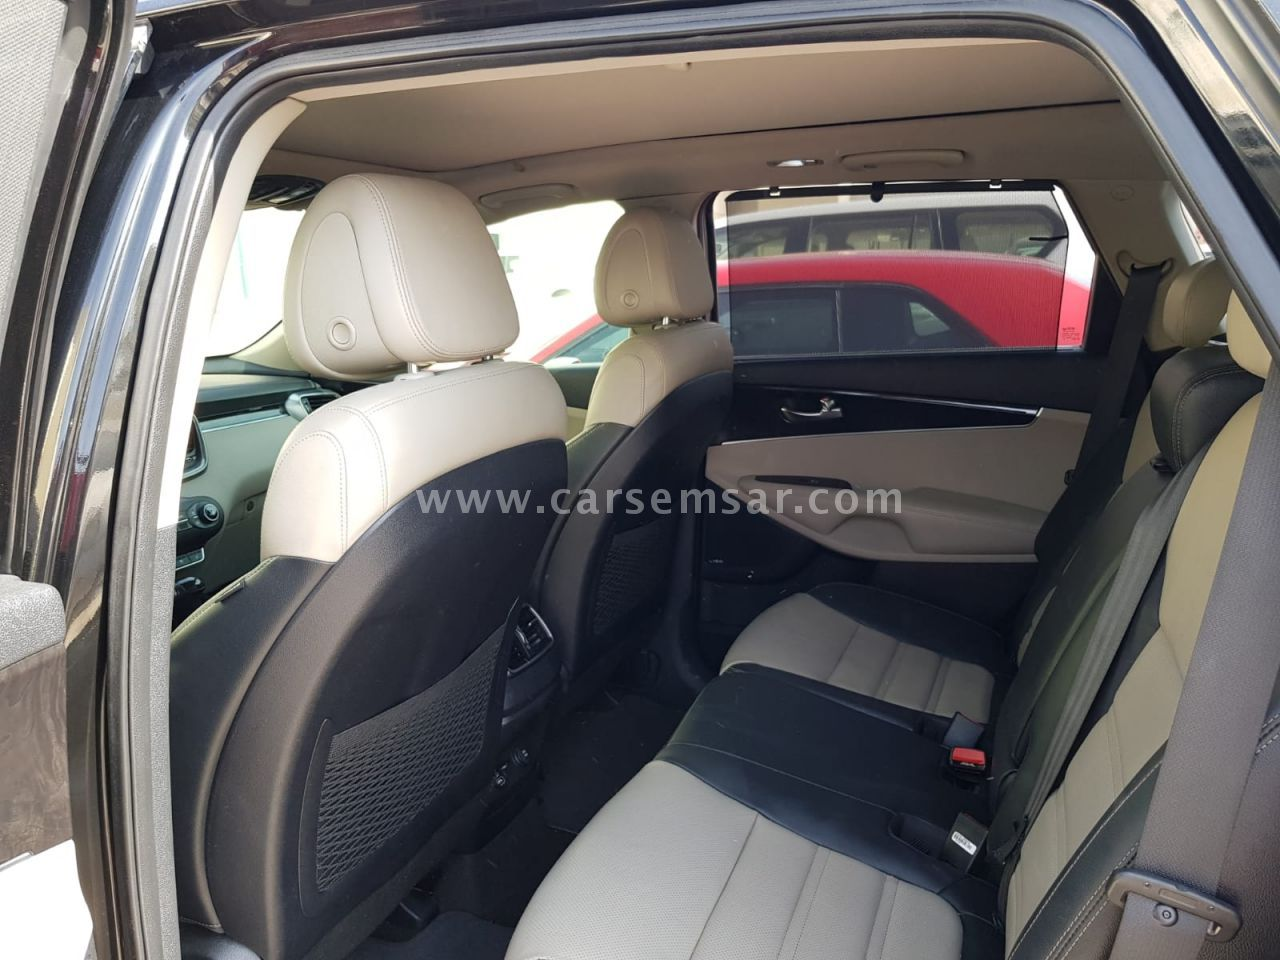 2015 Kia Sorento 2.4 for sale in Qatar - New and used cars ...